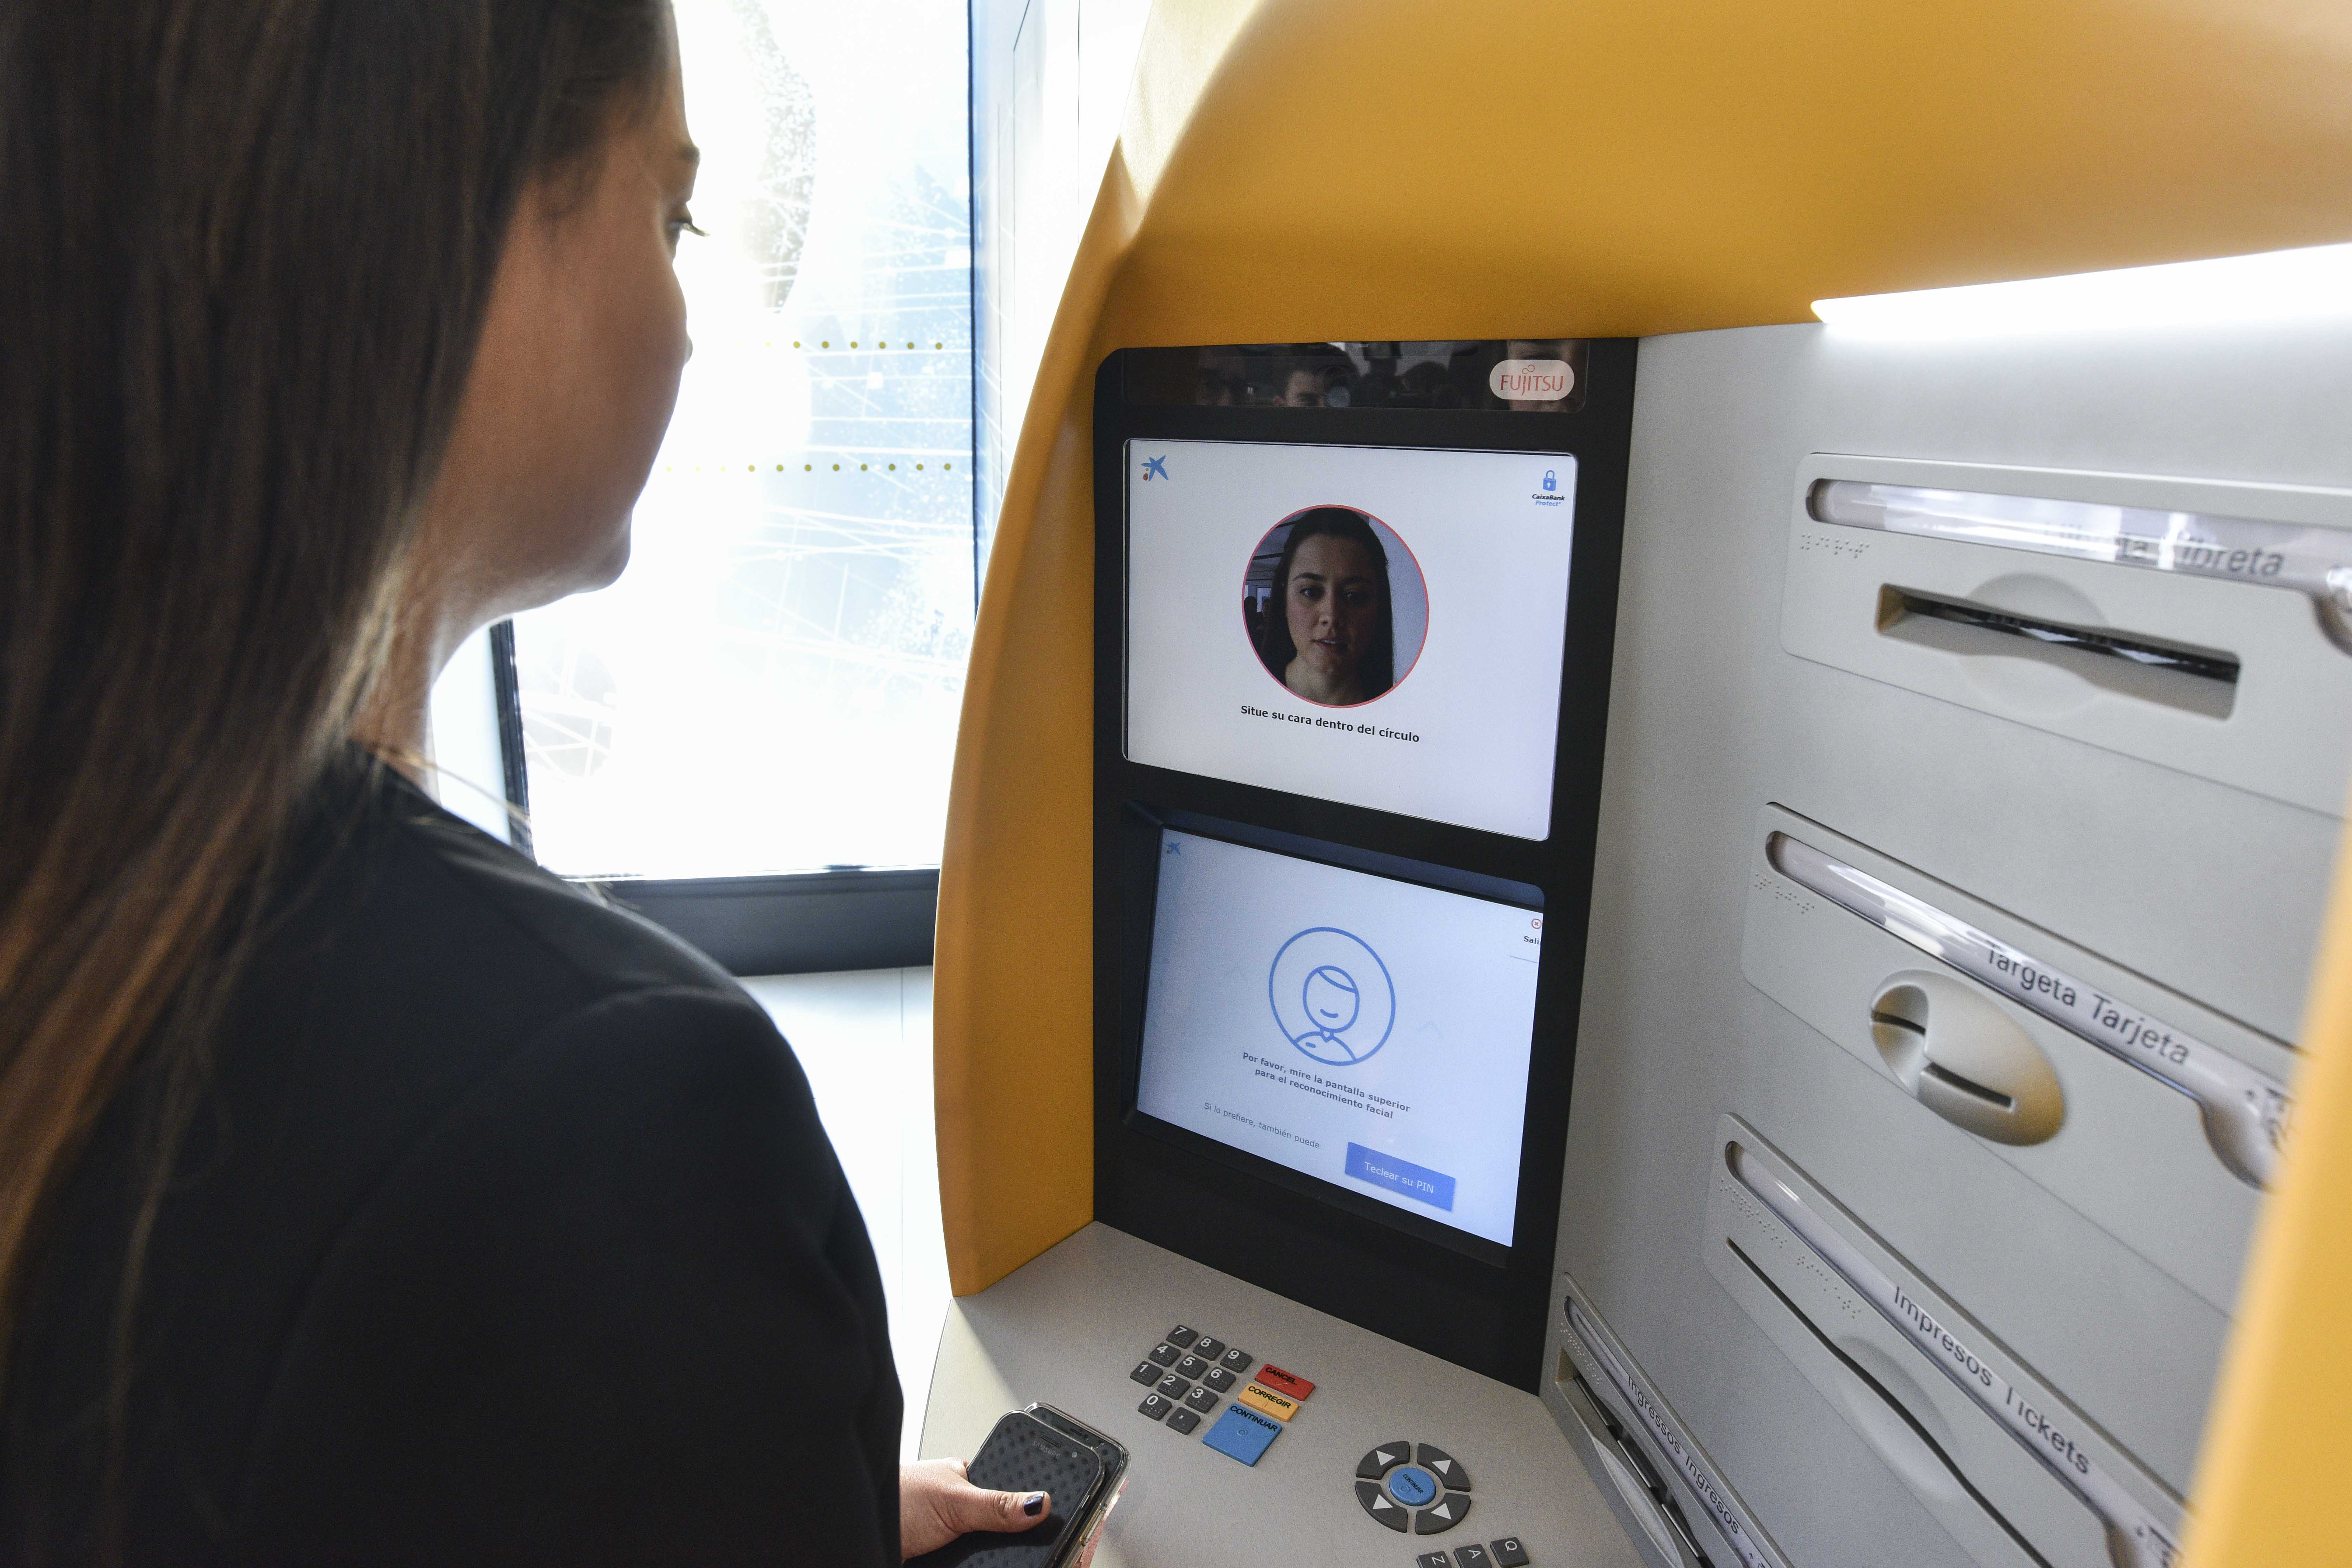 CaixaBank brings facial recognition to cash withdrawal for the first time